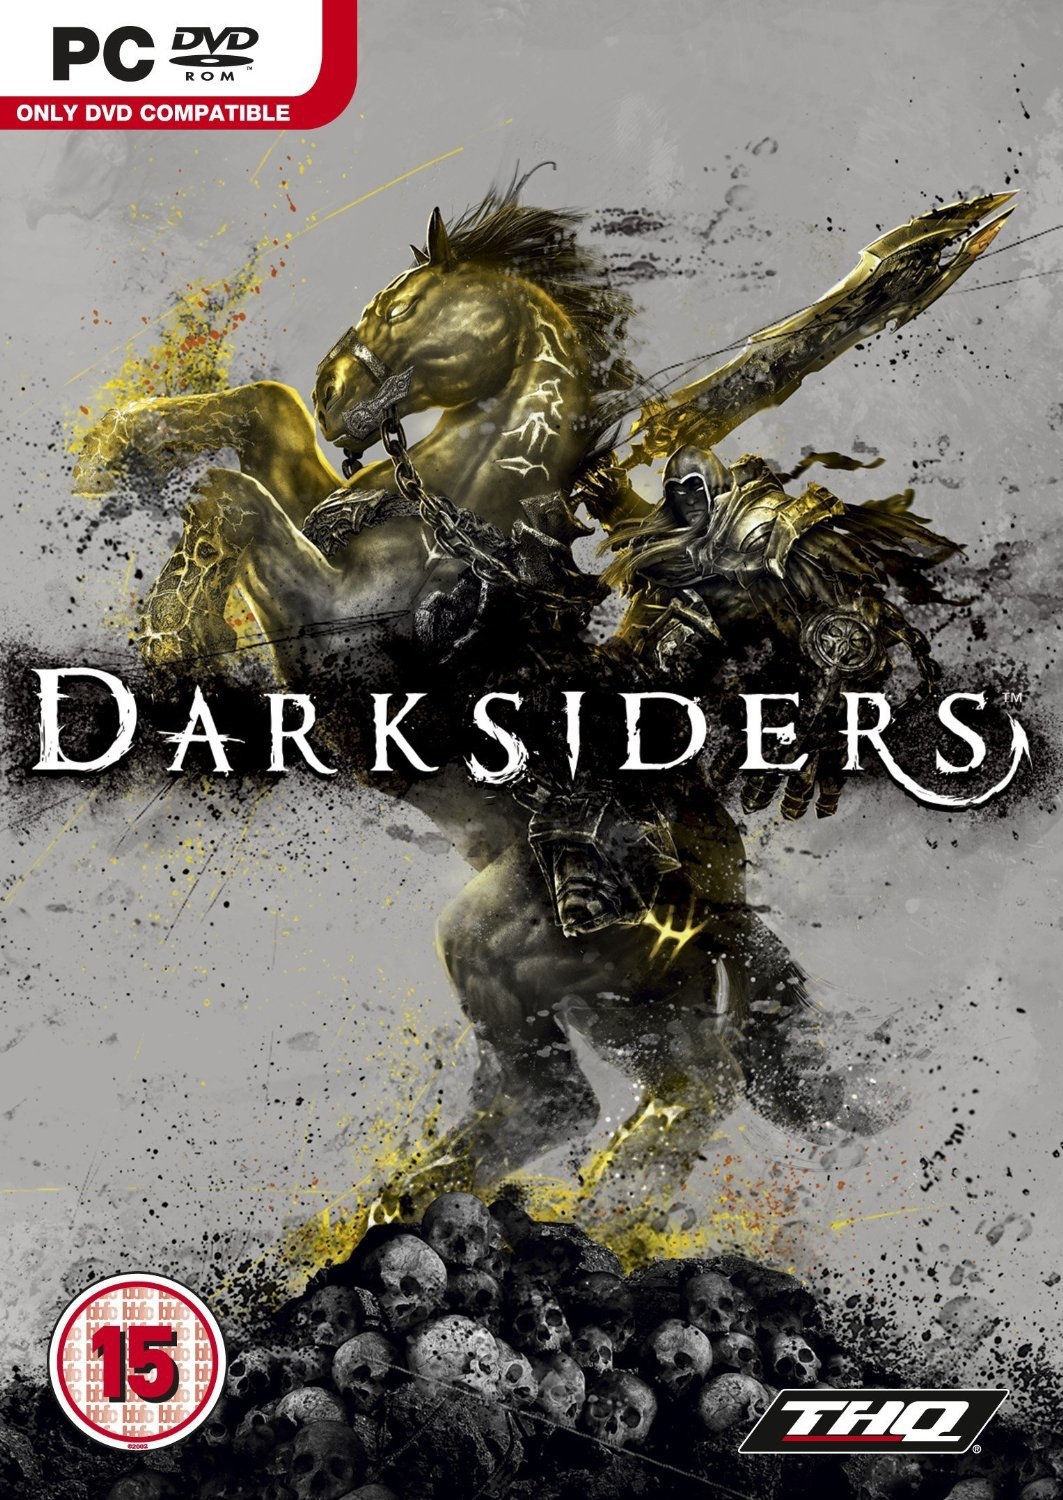 Darksiders (Video Game 2010) - IMDb